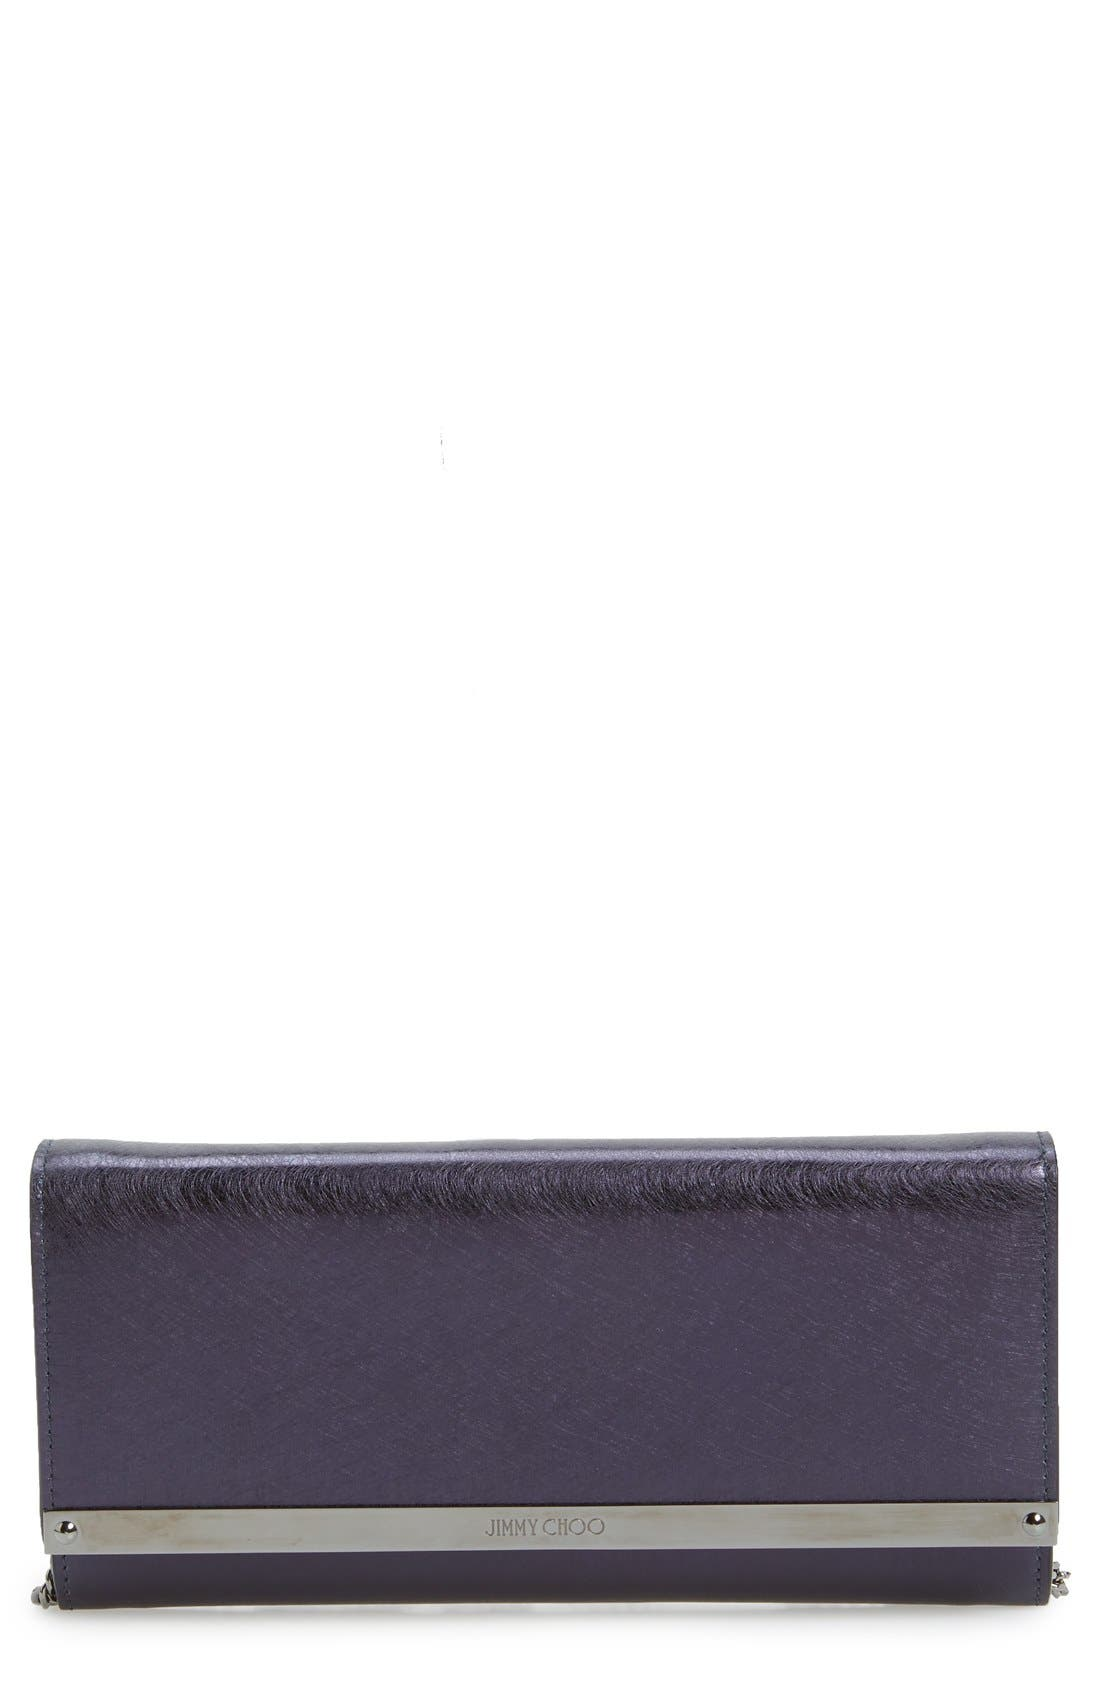 JIMMY CHOO 'Milla' Etched Metallic Spazzolato Leather Flap